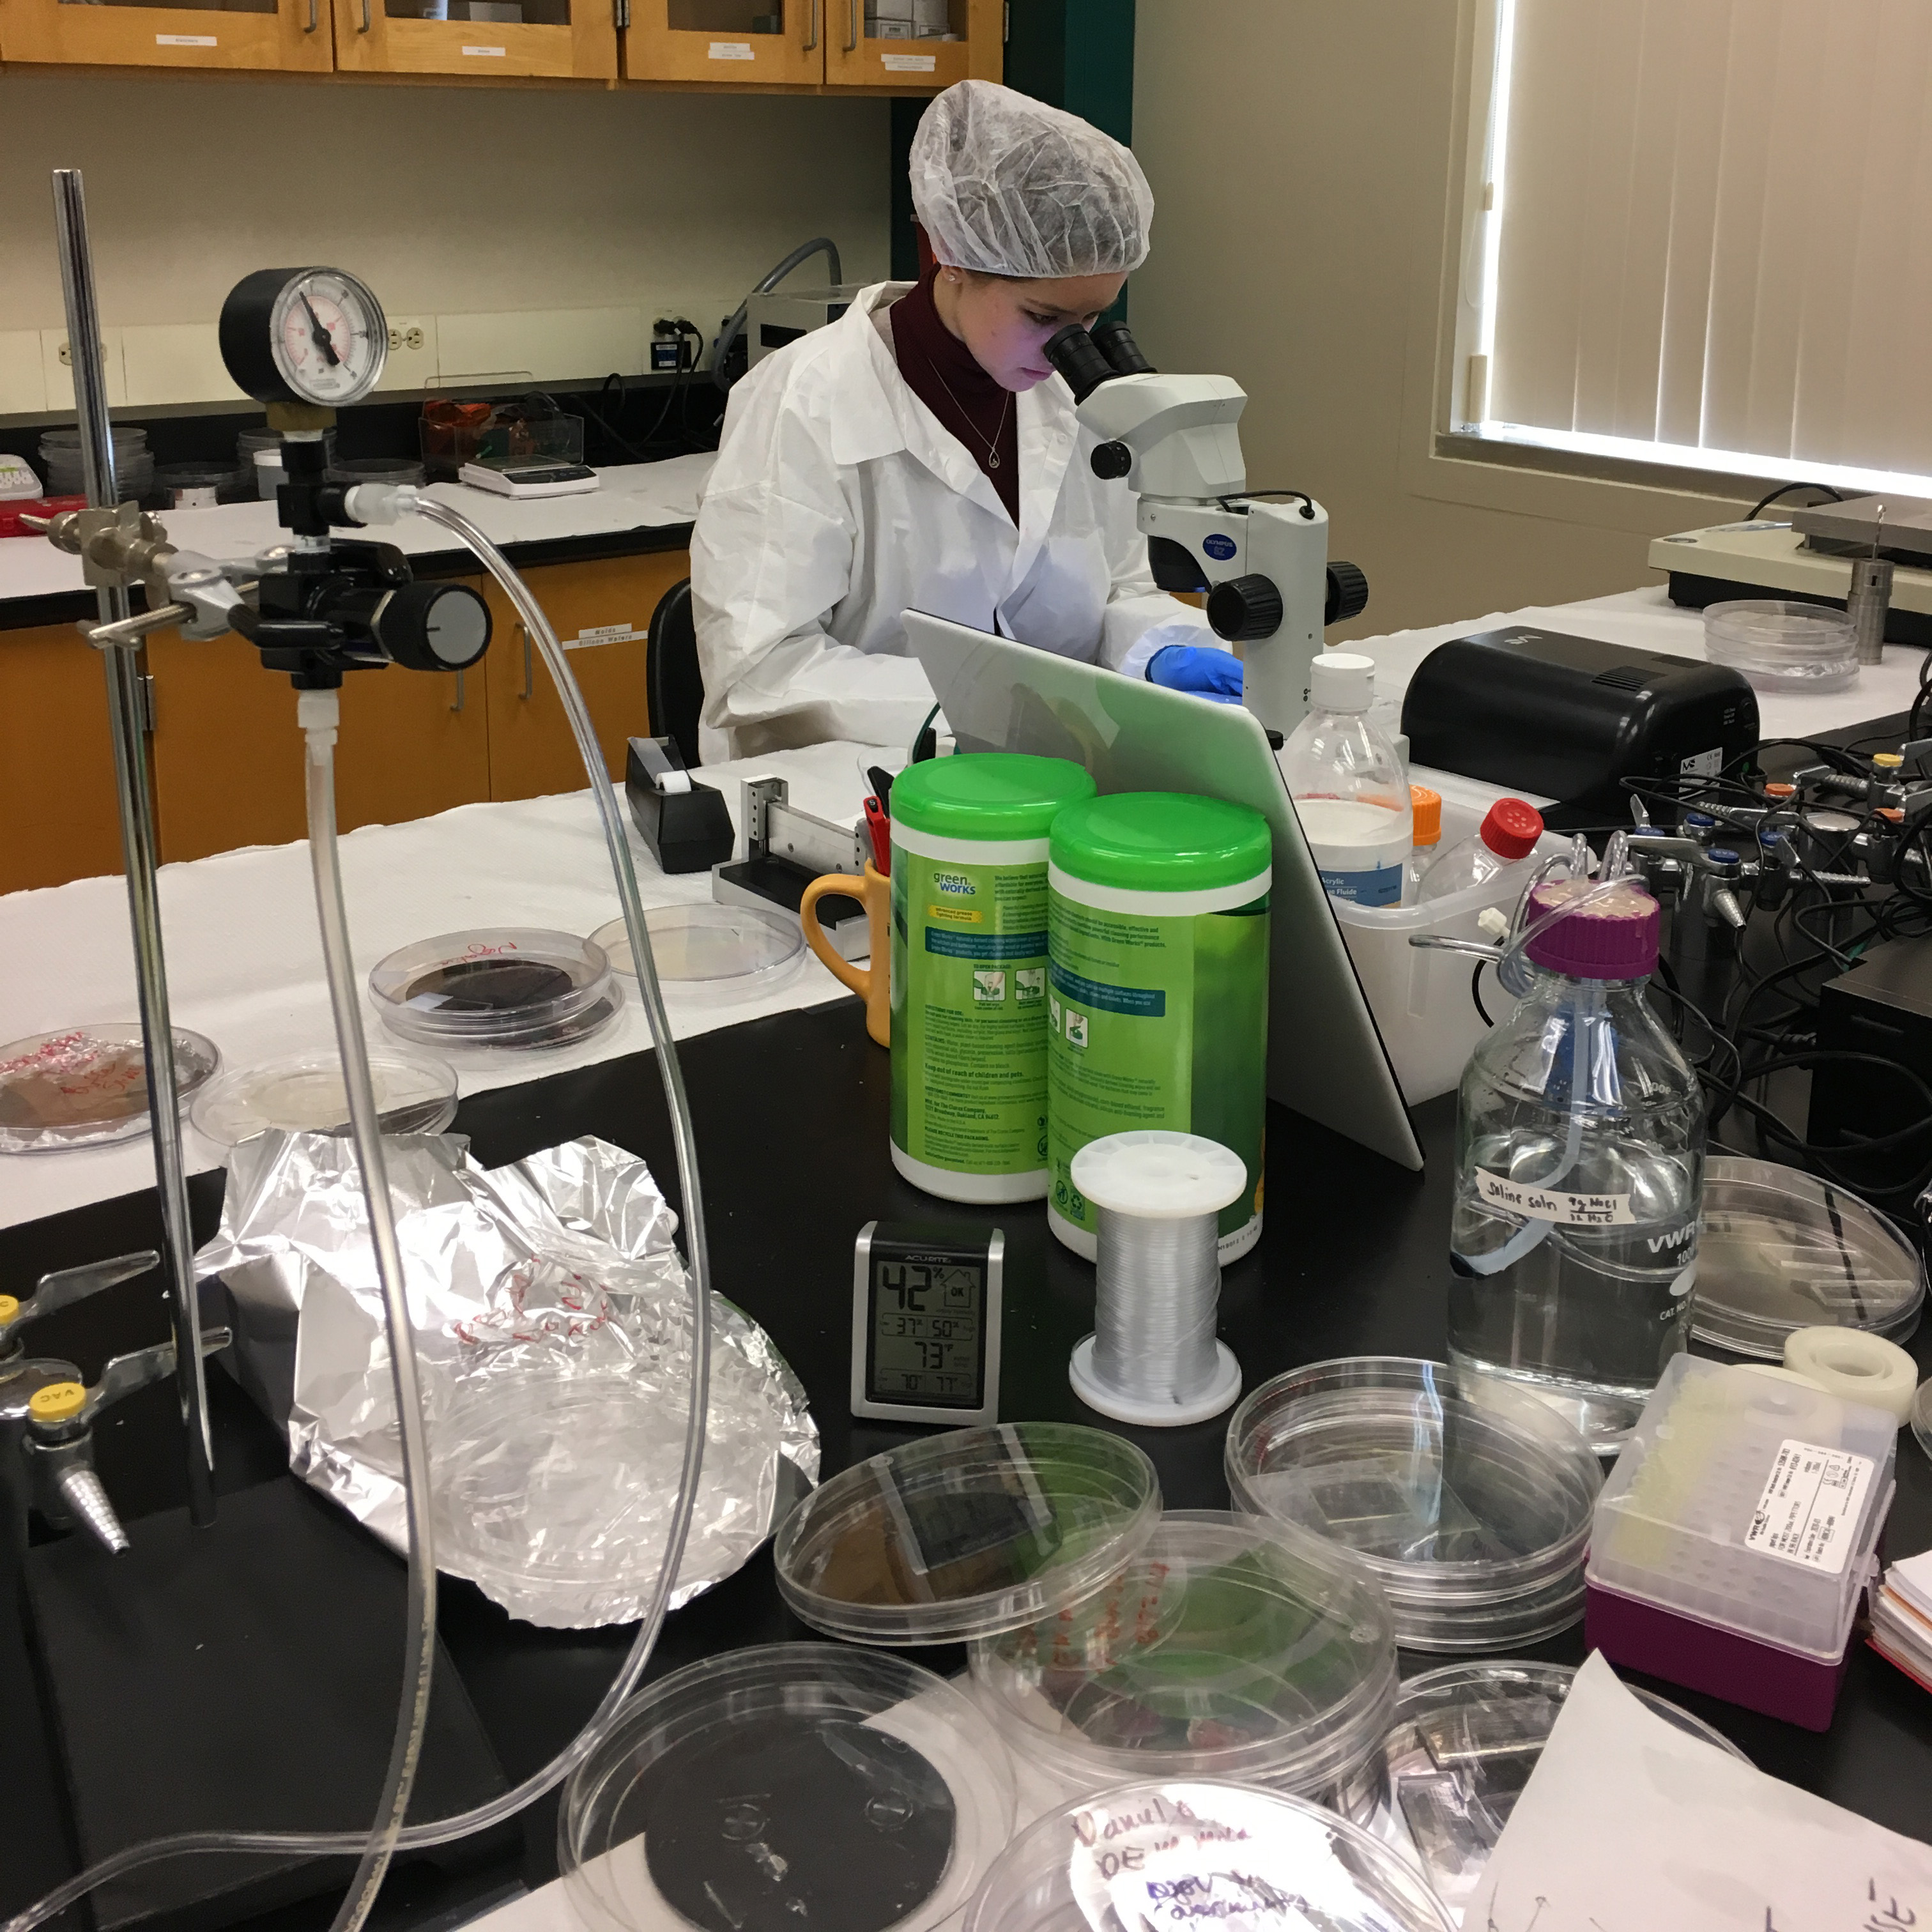 Female student at work in a bioengineering laboratory image link to story